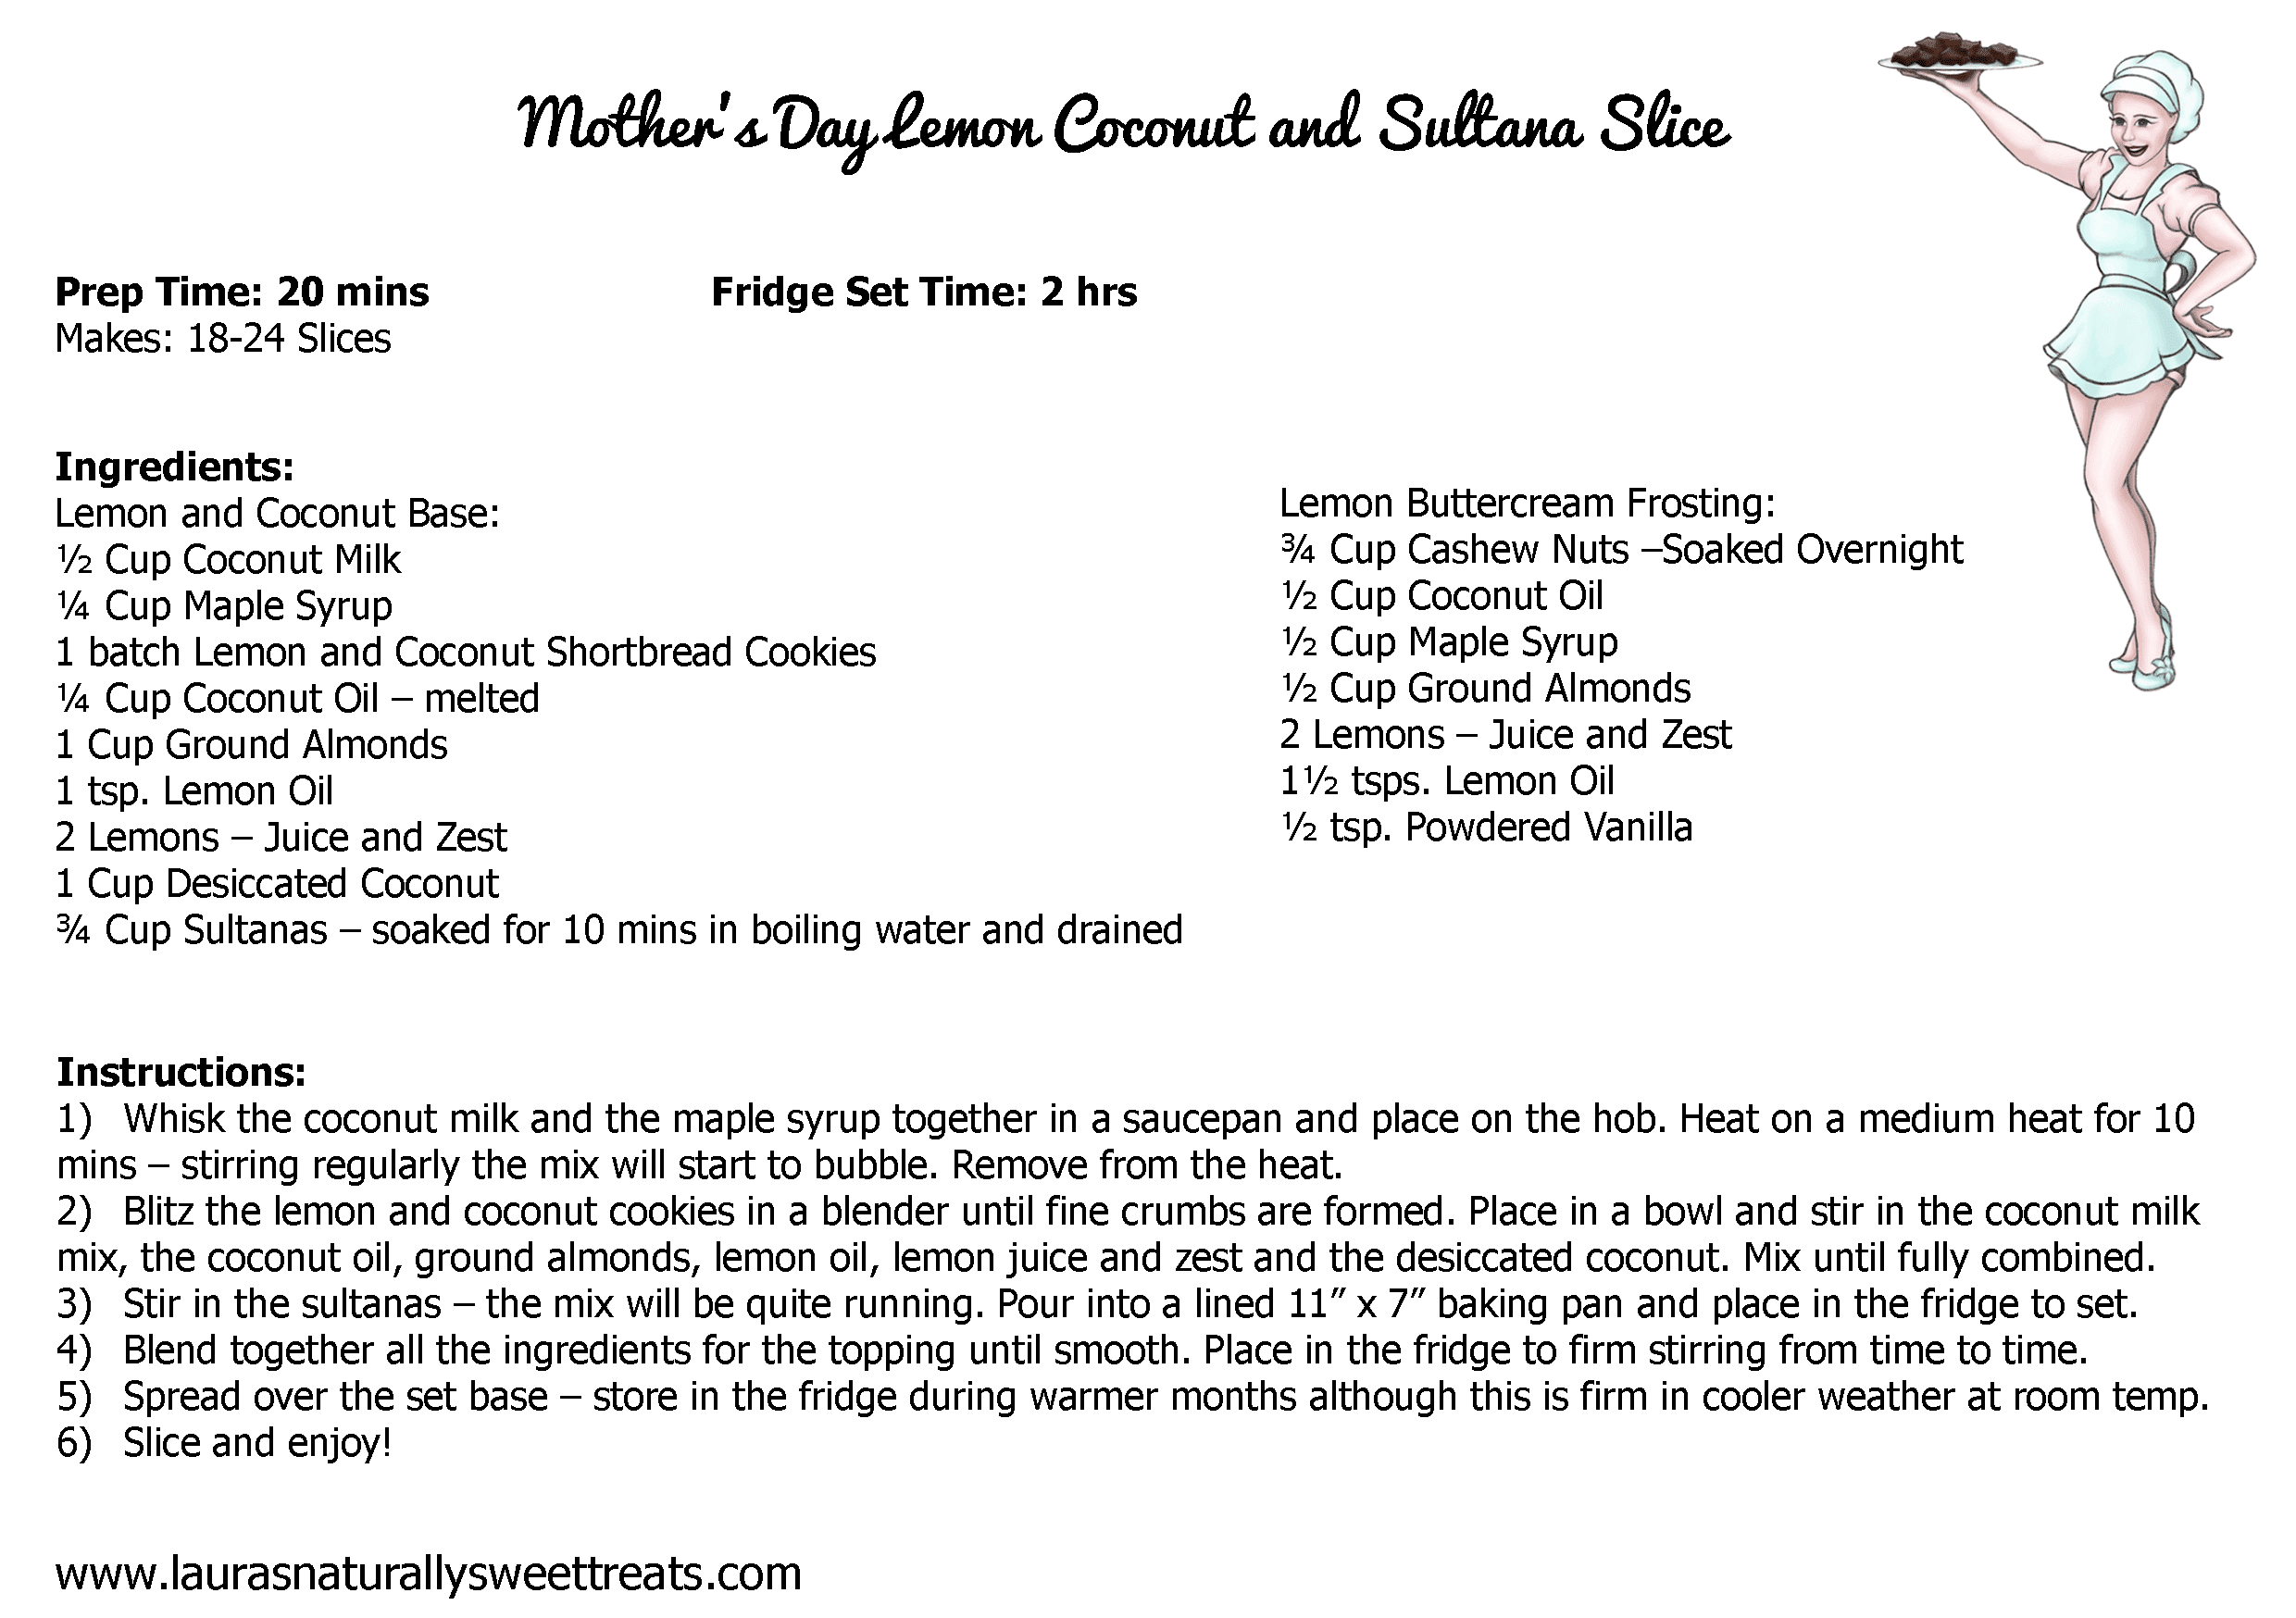 mothers day lemon coconut and sultana slice recipe card